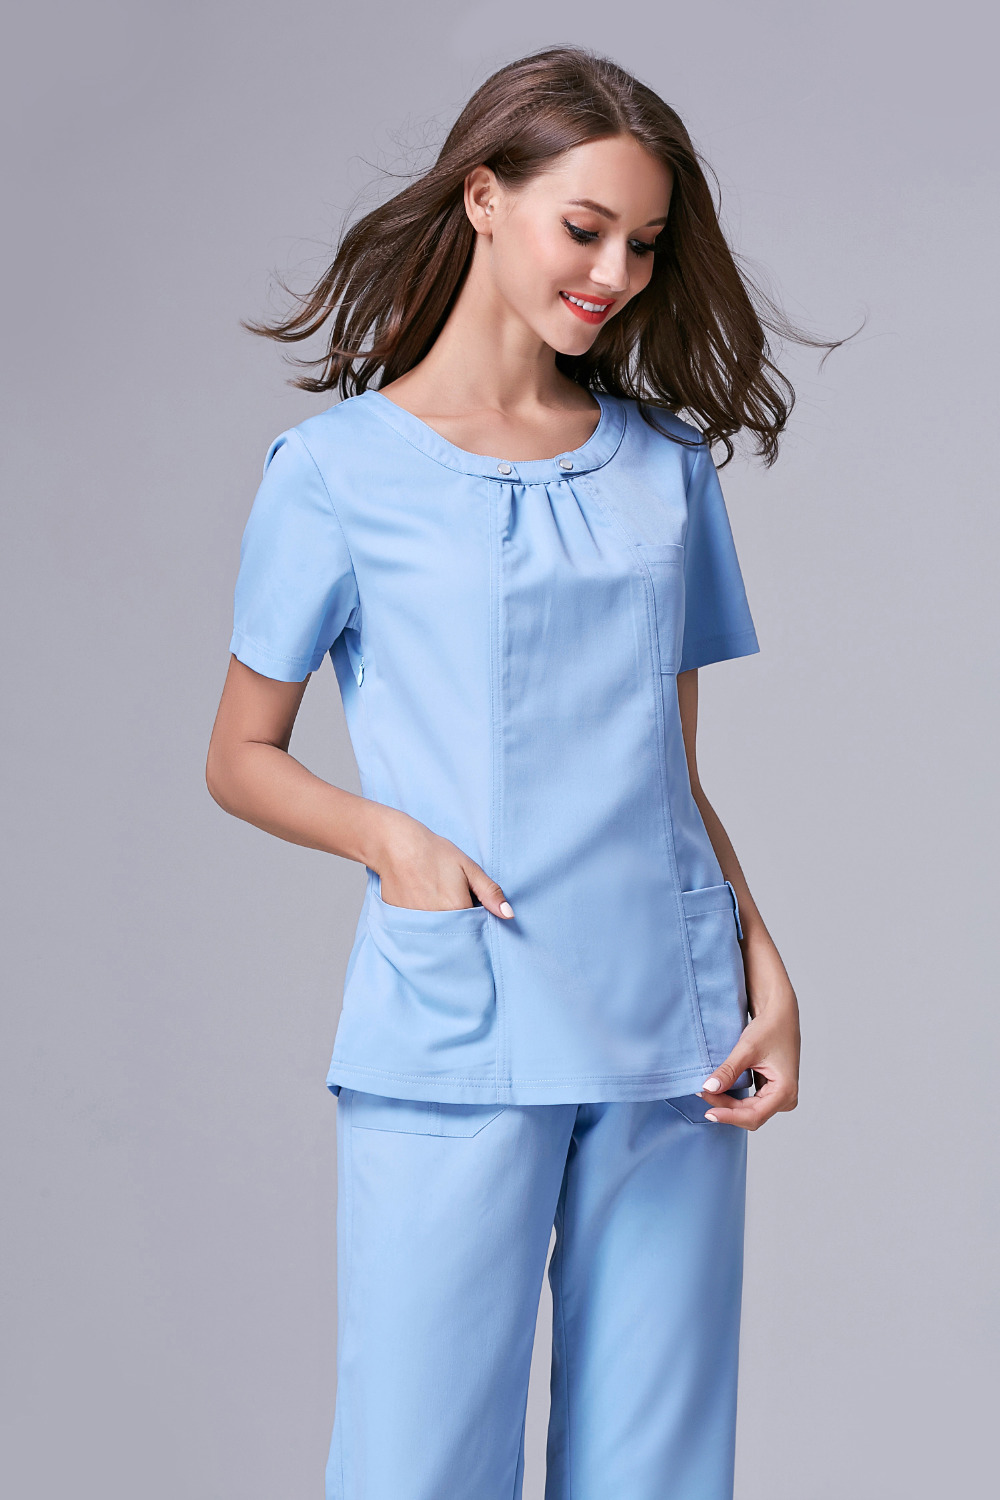 Europe style Fashion Medical Suit Lab Coat Women Hospital